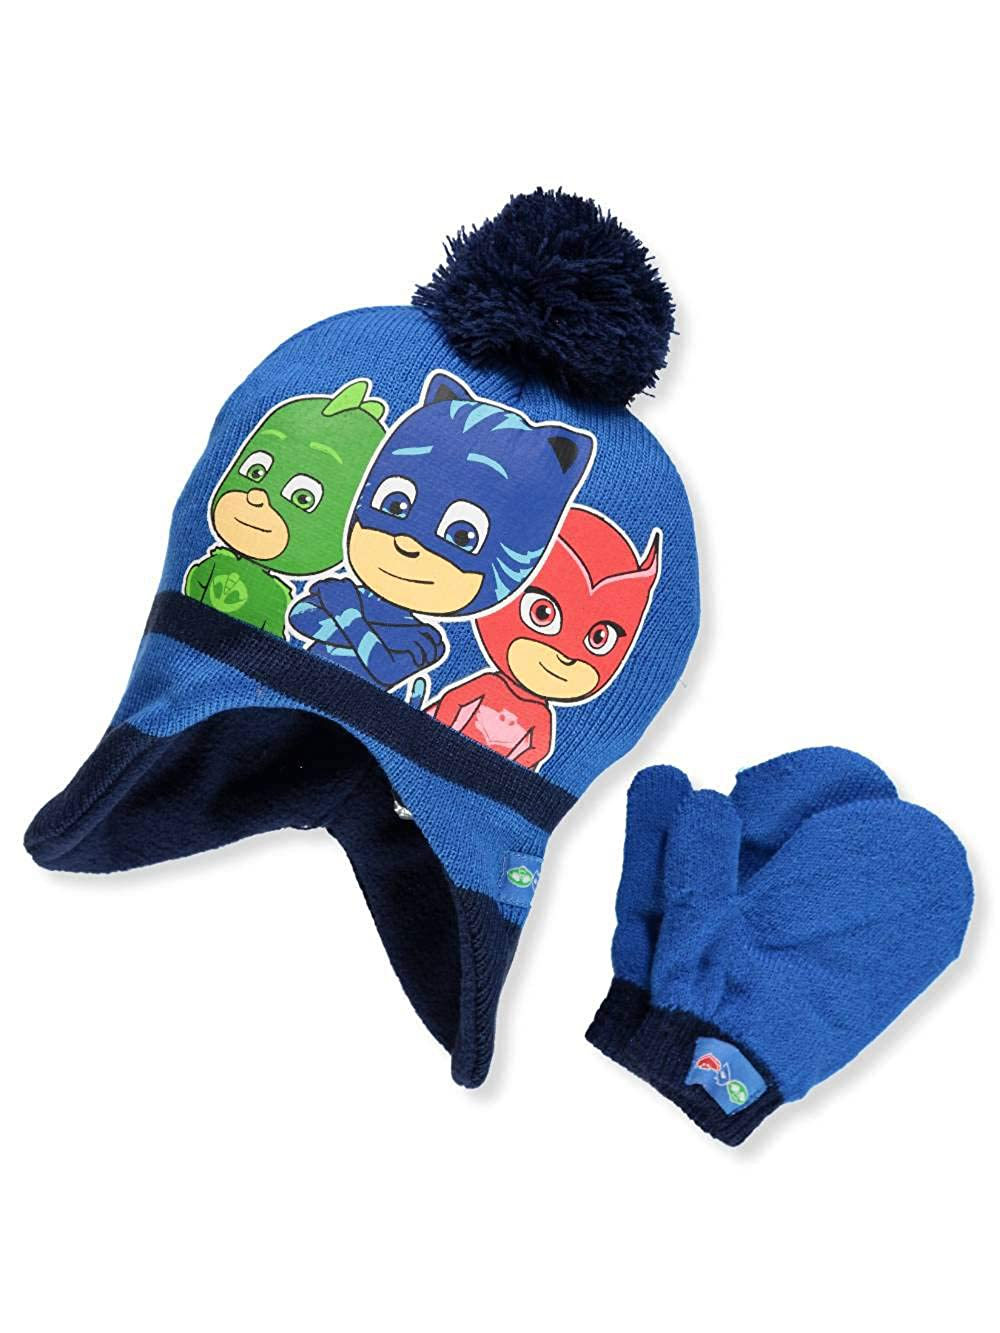 PJ Masks Big Boys' Beanie & Mittens Set - dark blue, one size